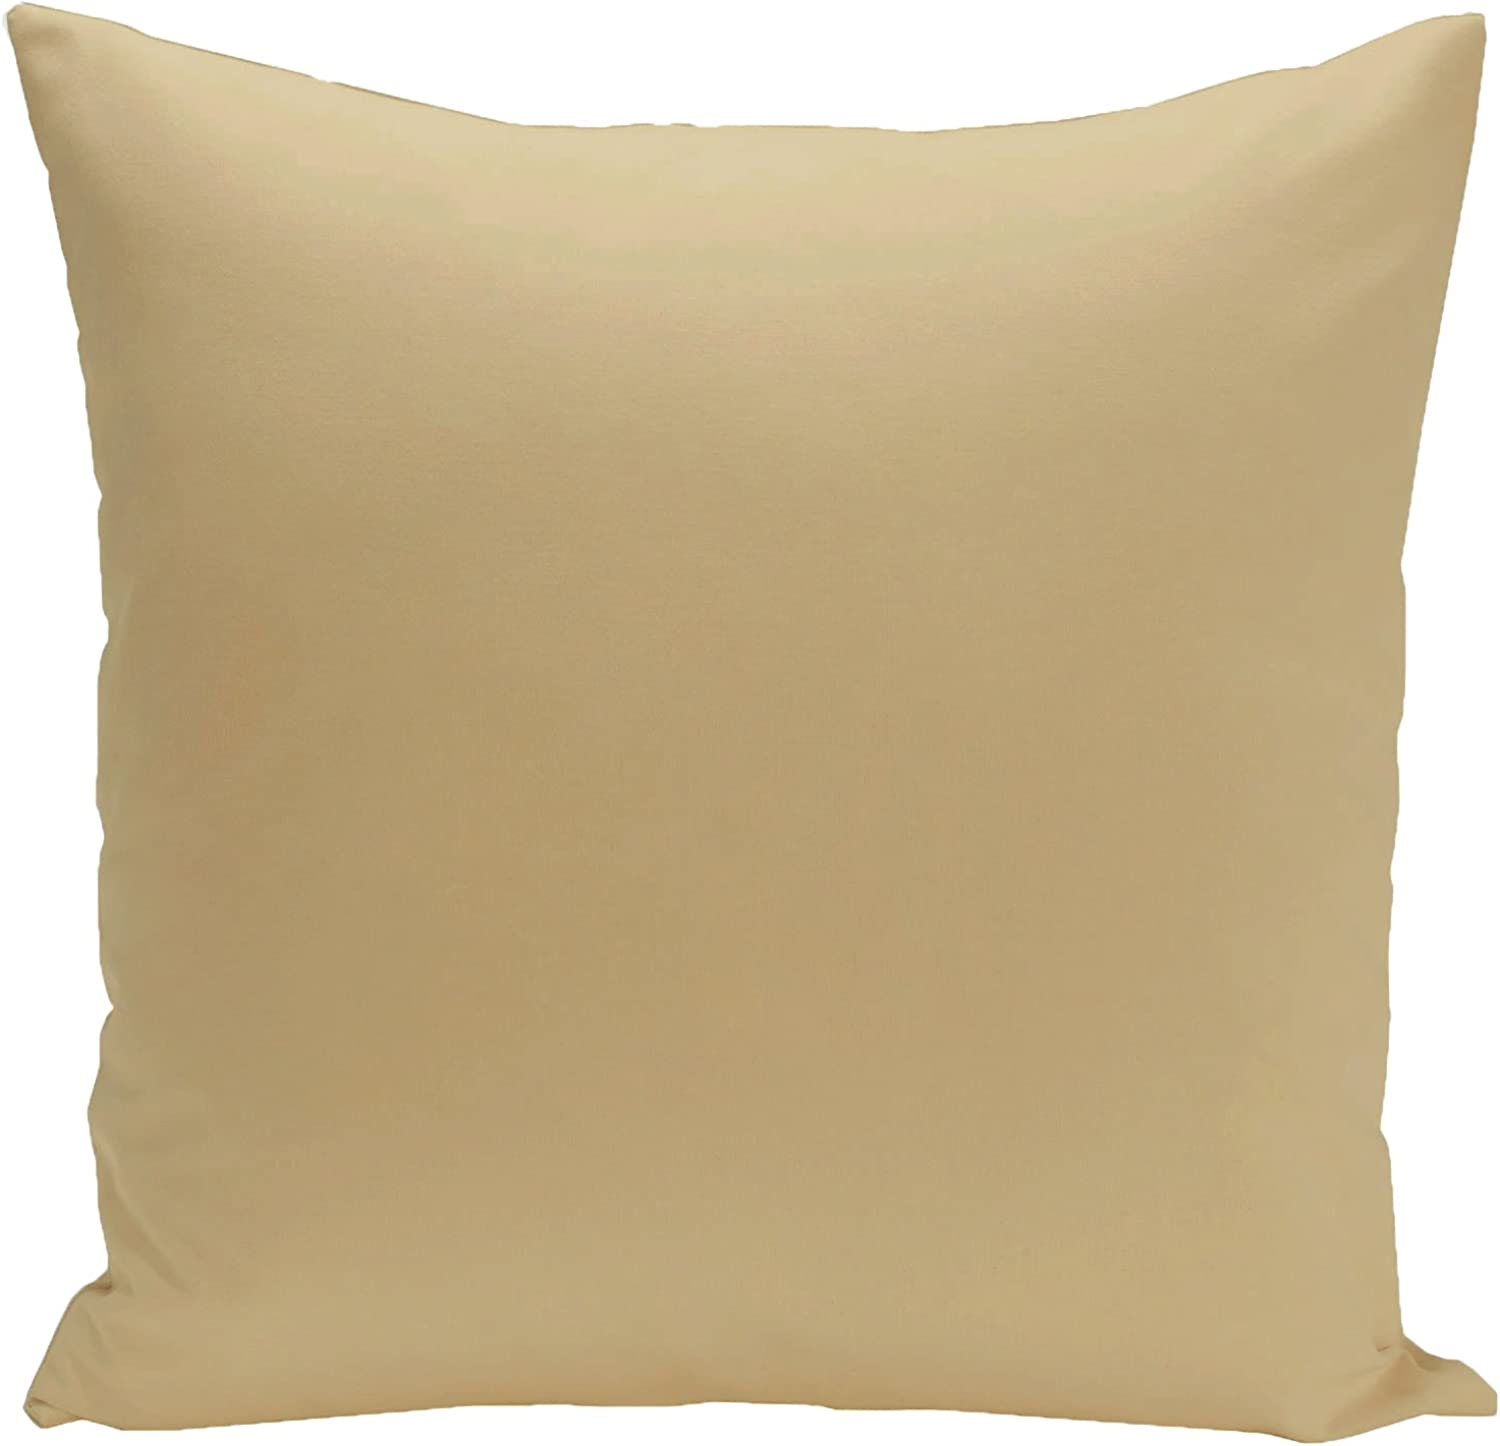 E By Design Asian Collection Emperor Solid Decorative Outdoor Pillow, 18-Inch